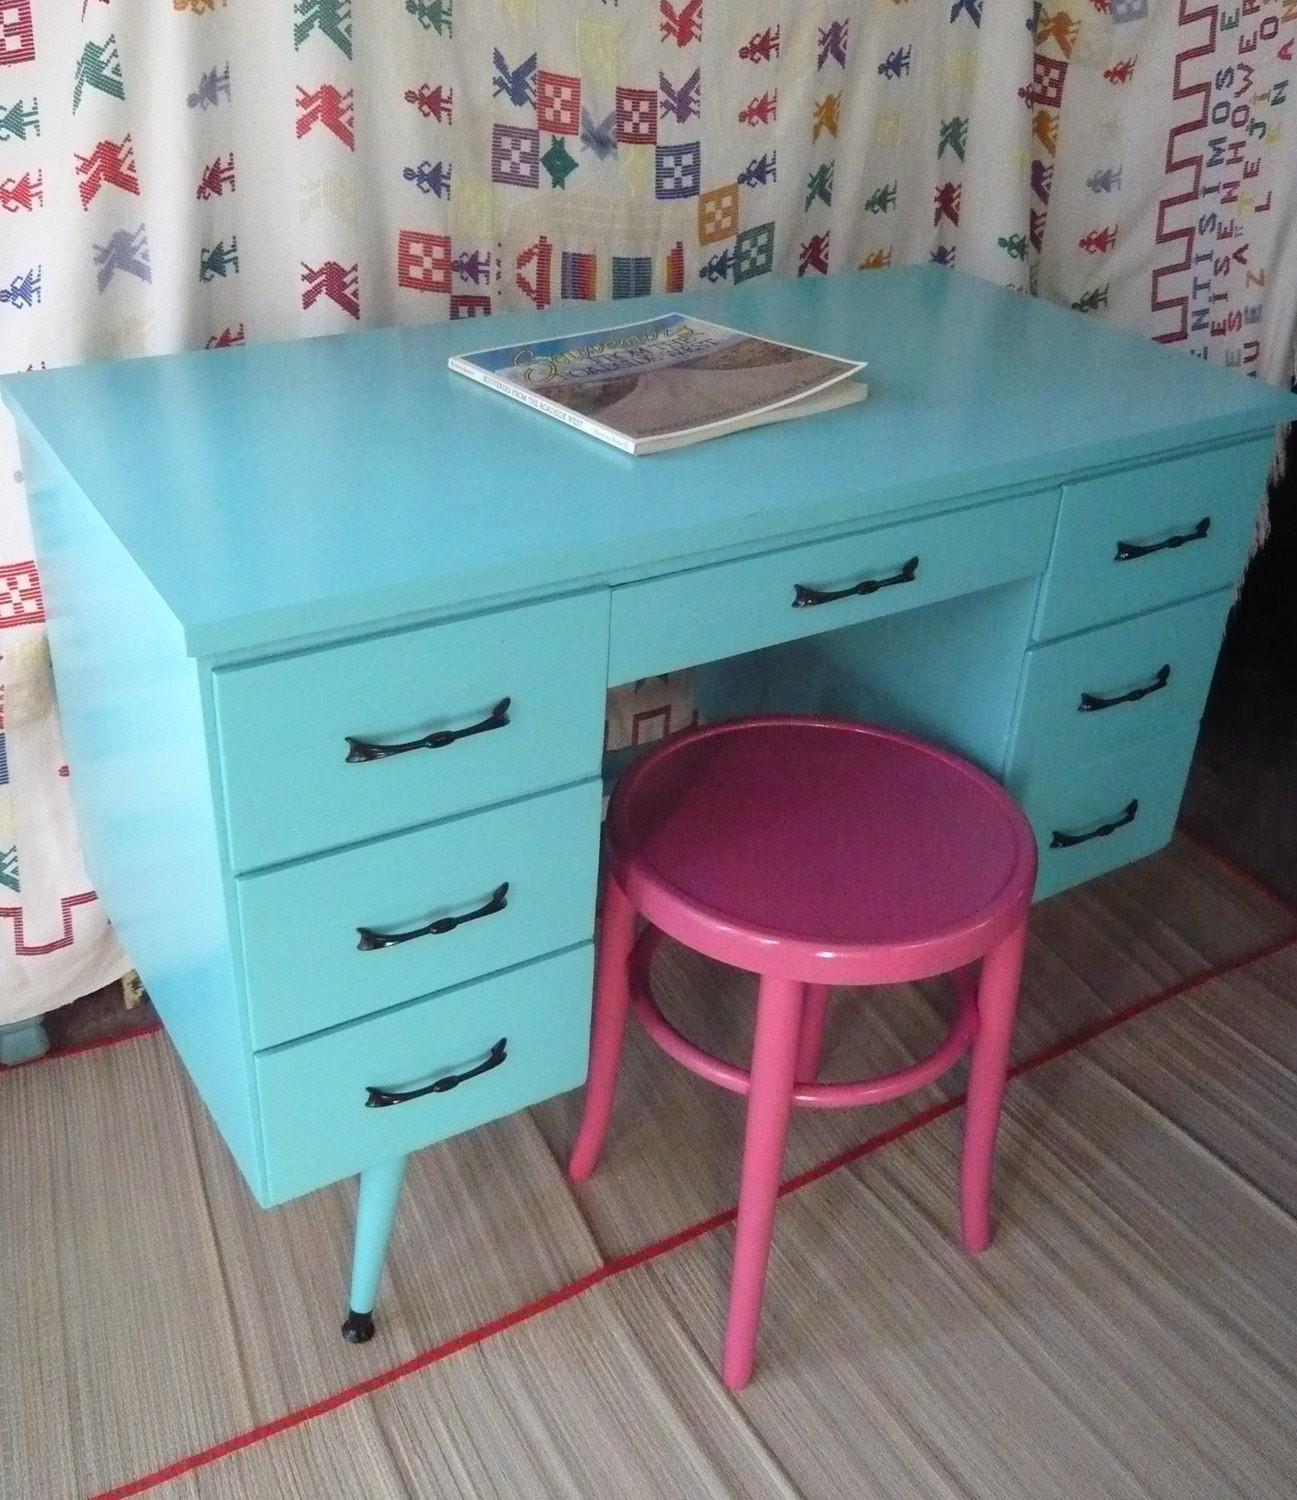 Calypso Retro Desk Vintage Painted Furniture Turquoise Beachy